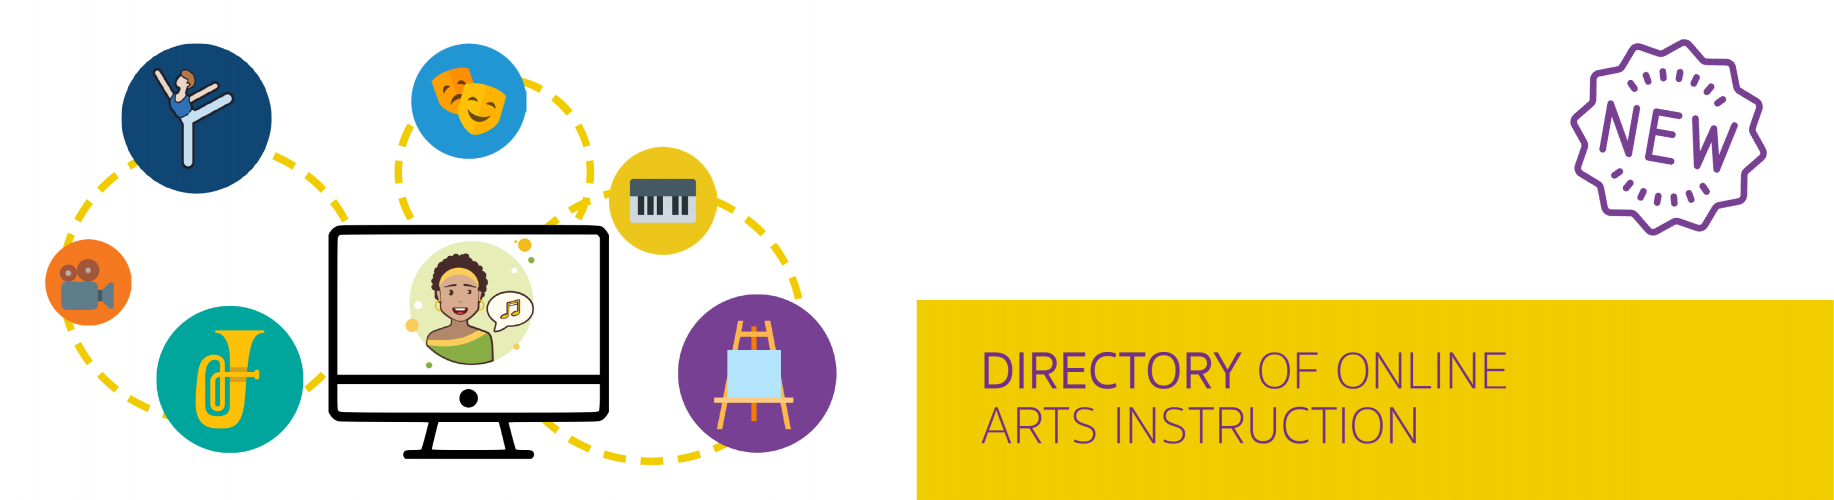 Directory of Online Arts Instruction